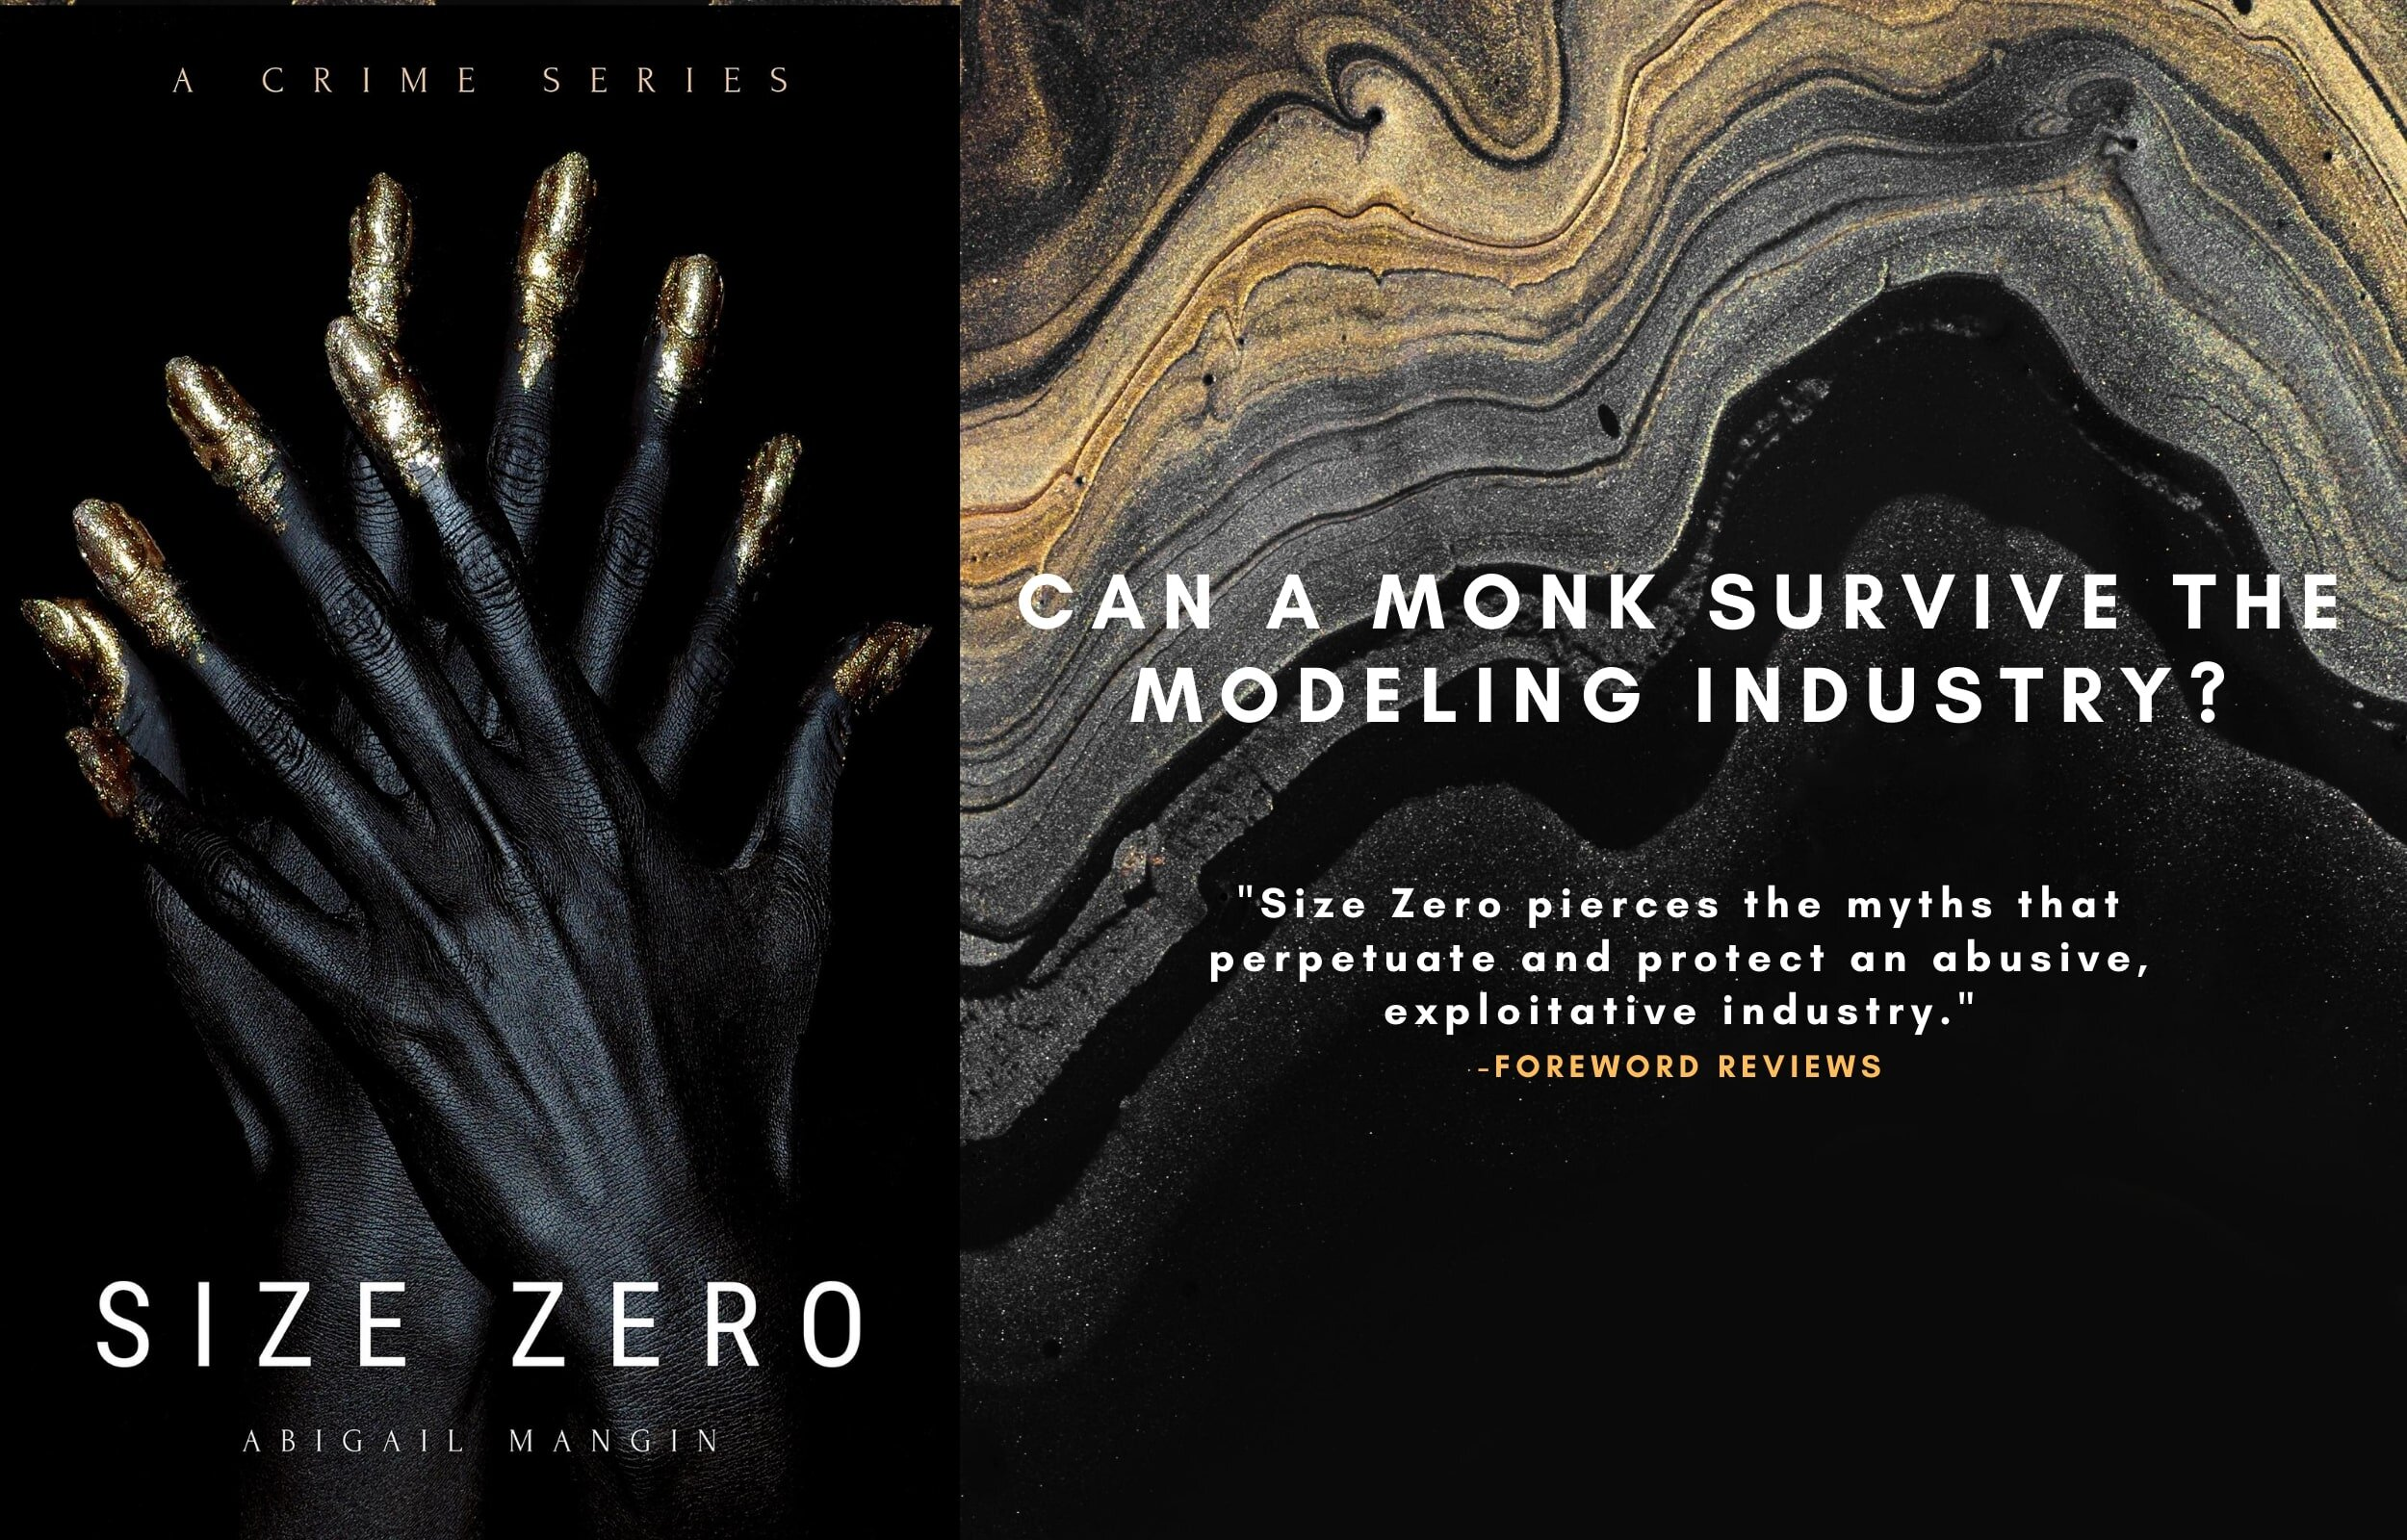 Size Zero: can a monk survive the modeling industry?